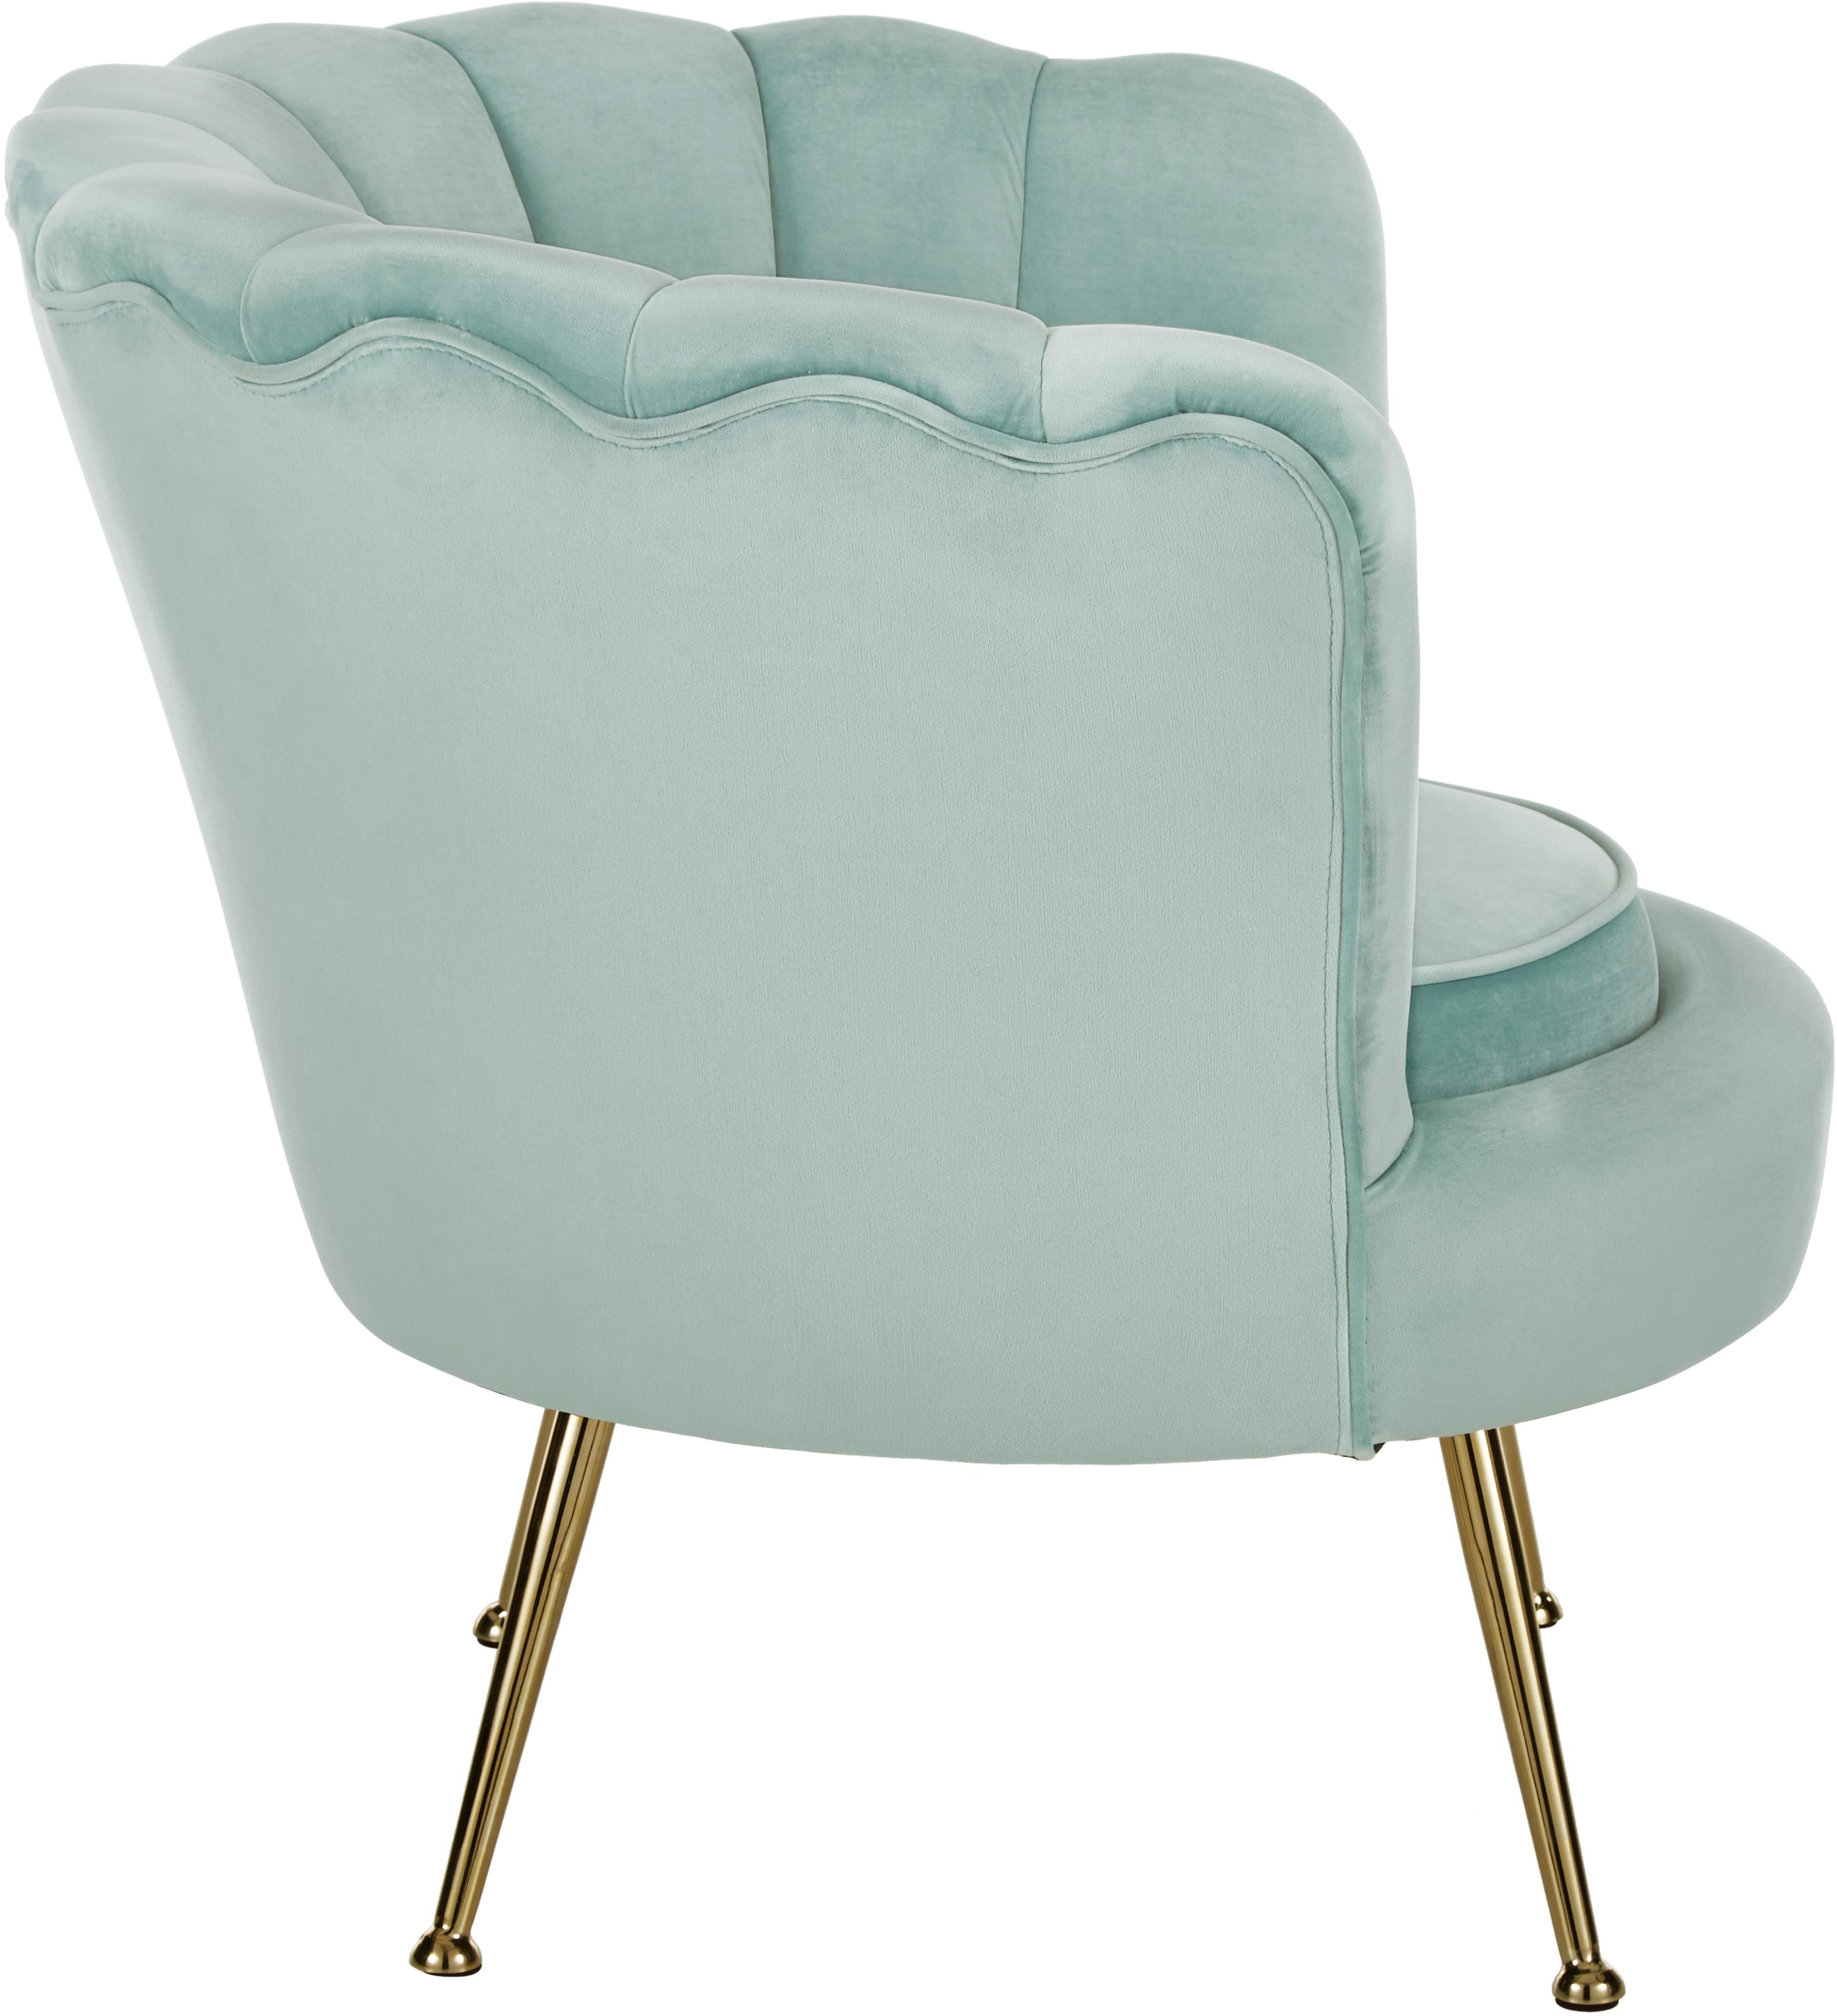 Fauteuil en velours Oyster, Turquoise